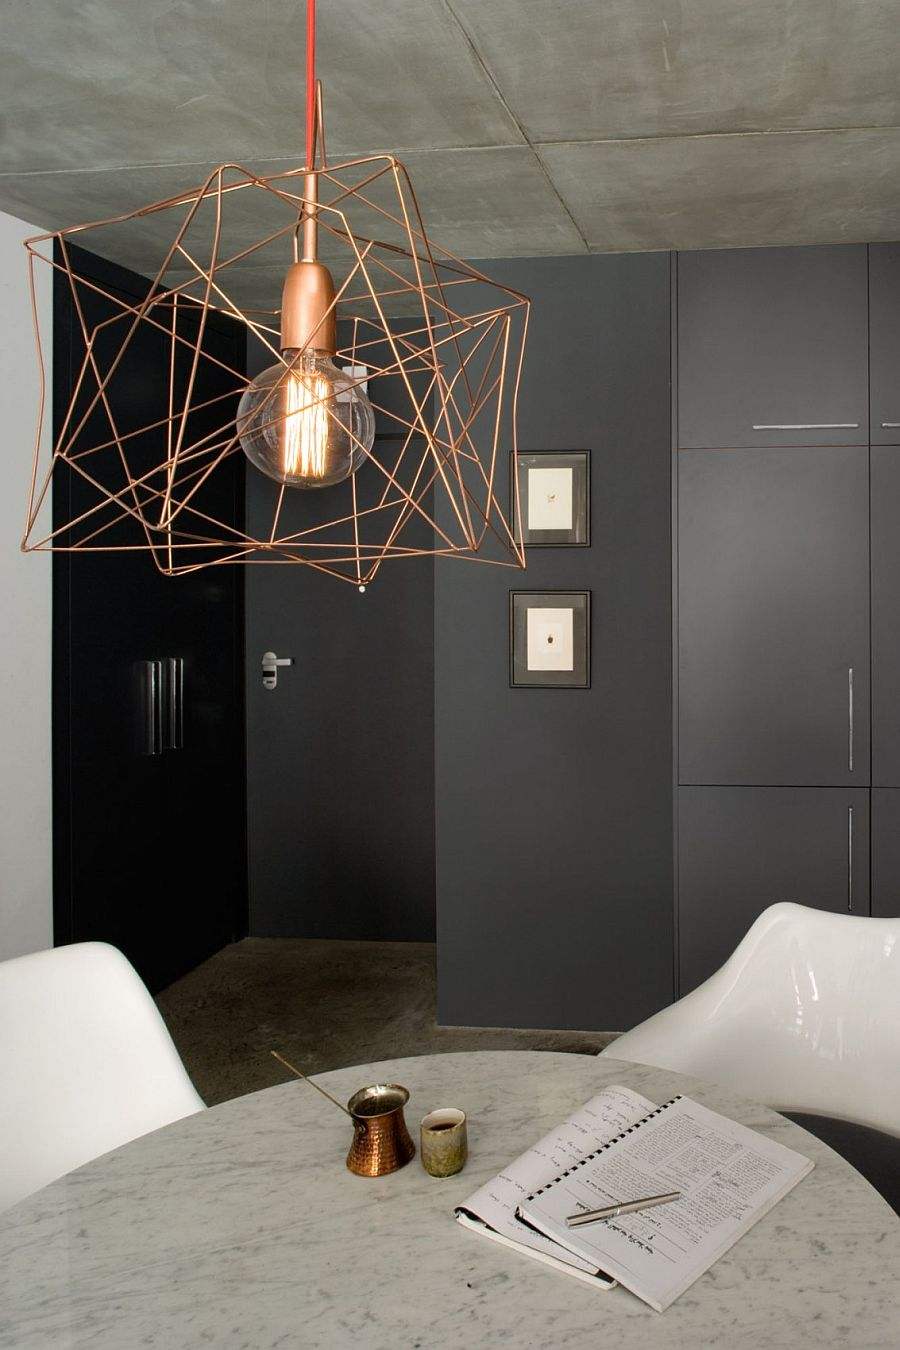 Gray backdrop and snazzy lighting add to the appeal of the quirky, small apartment